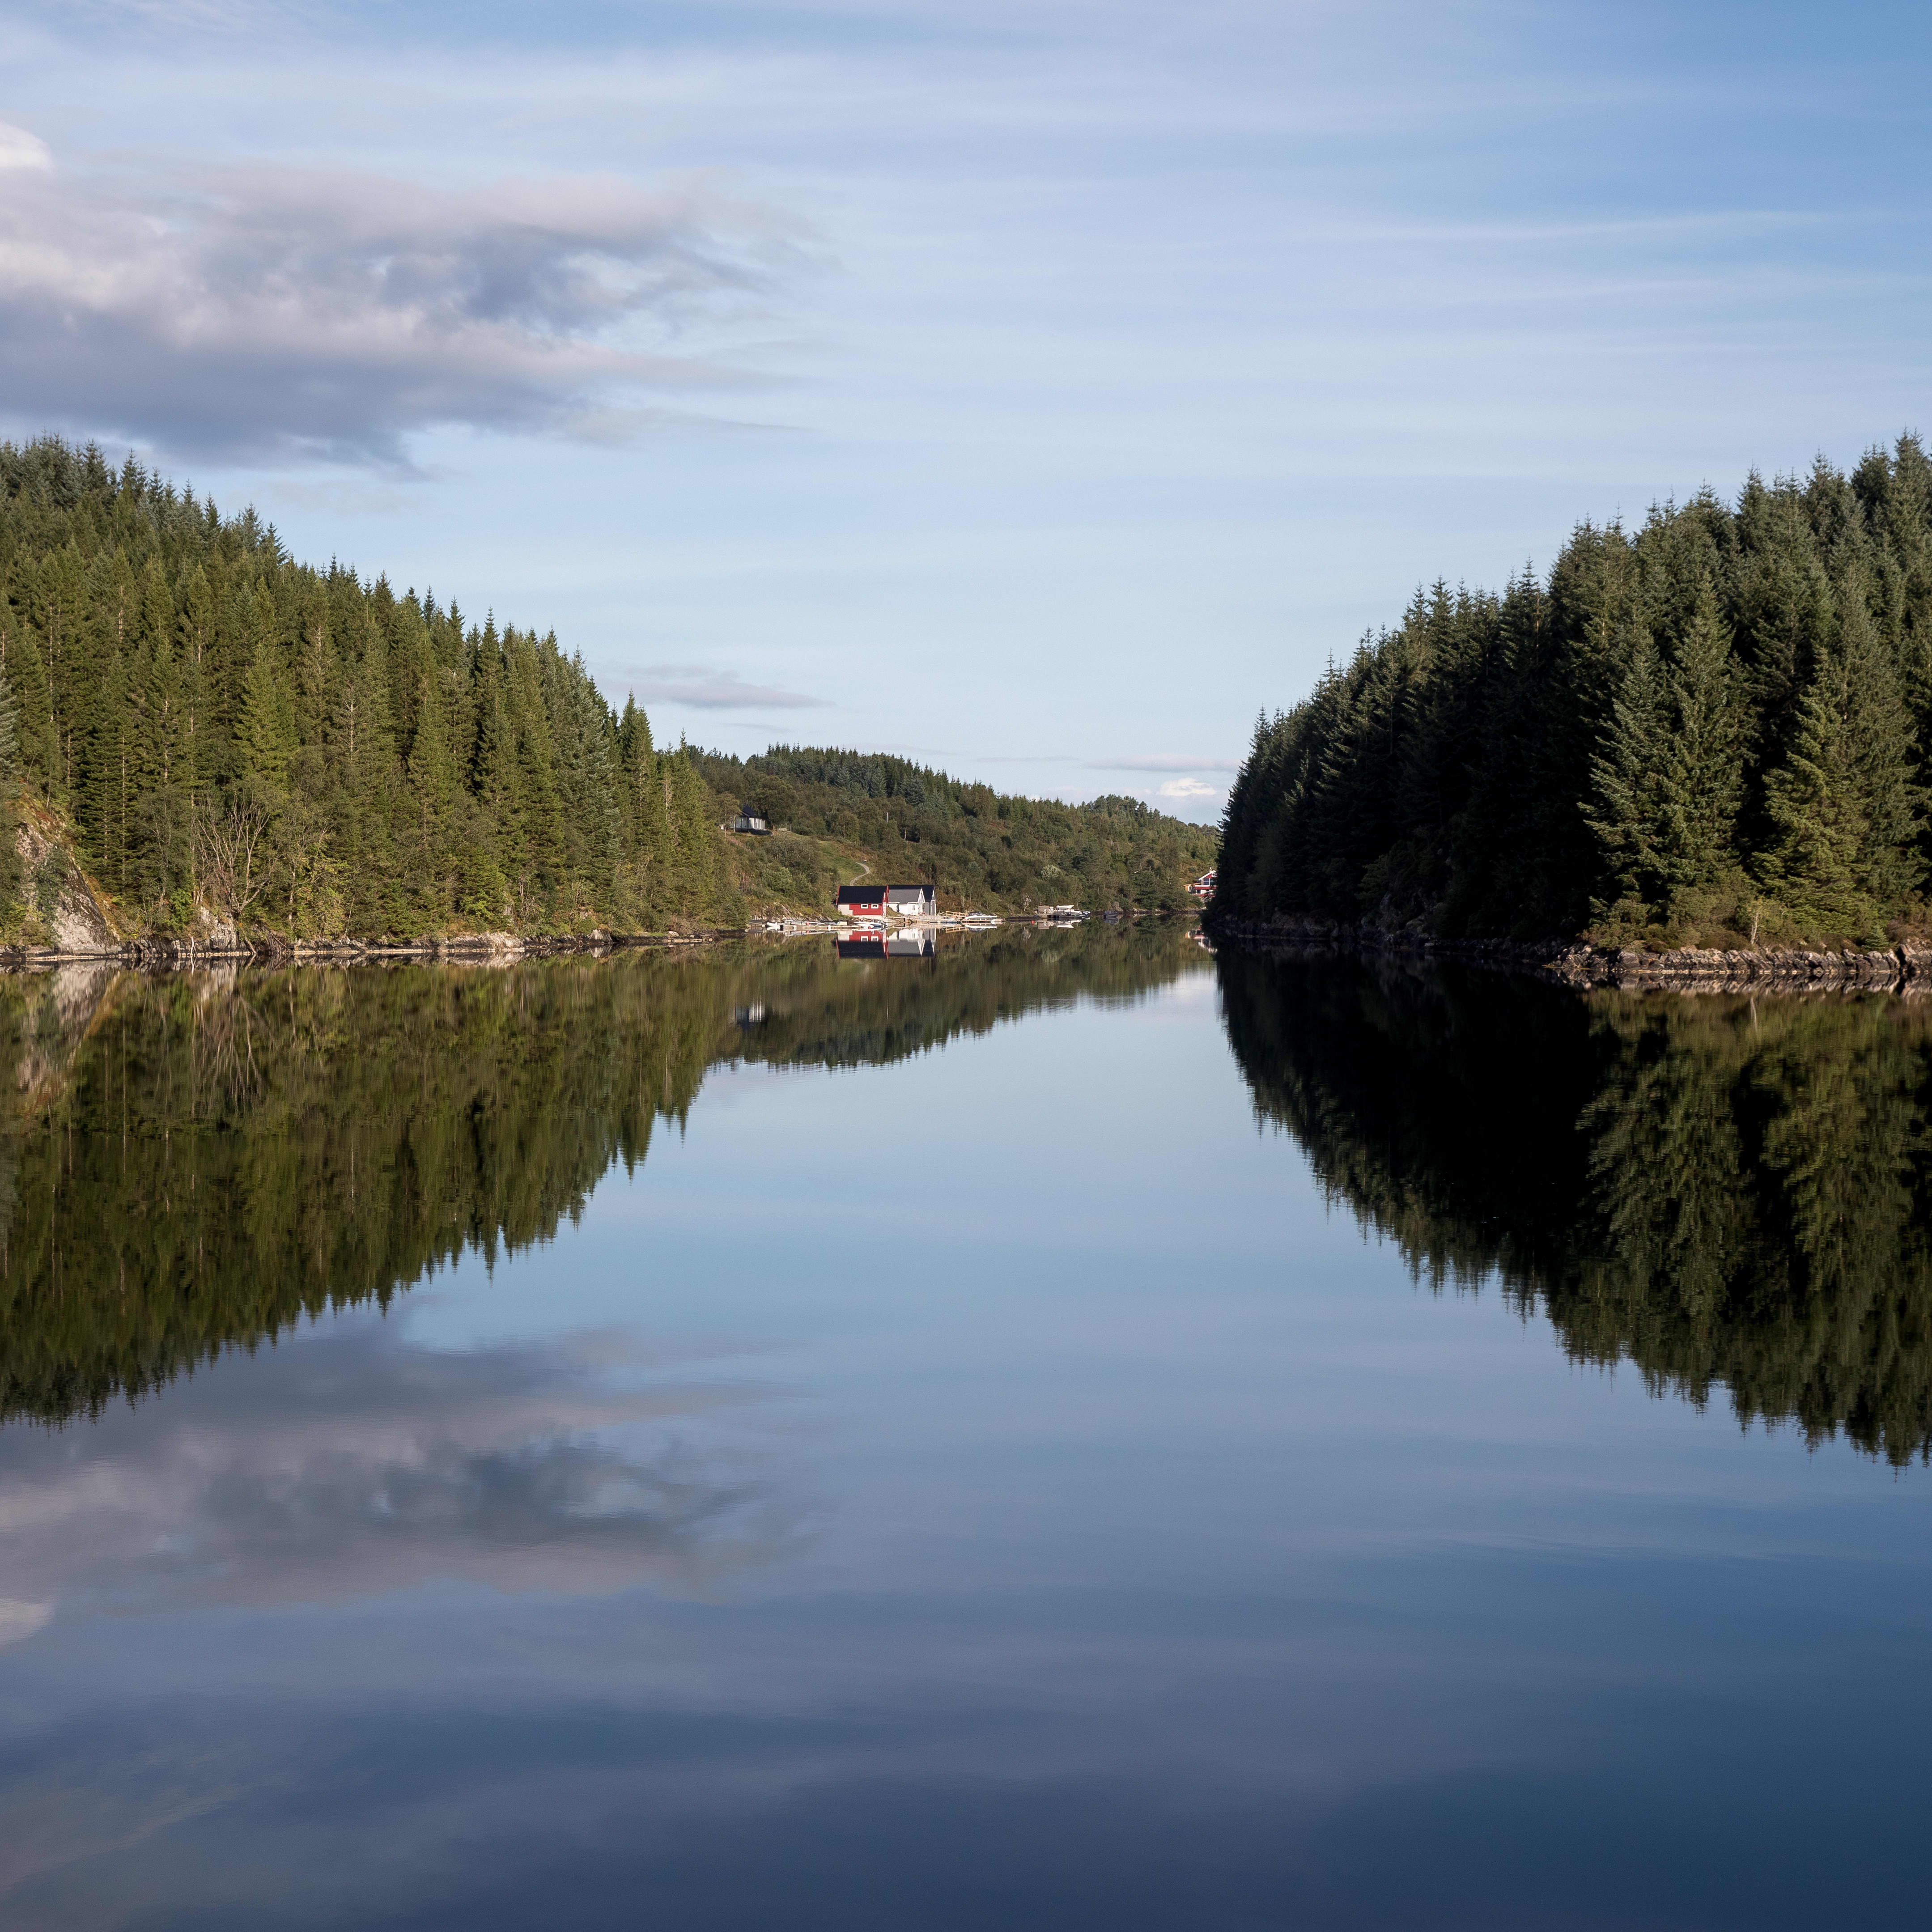 A mirror reflection of trees and islands in still water in the narrow streams between Bergen and Skjerjehamn.